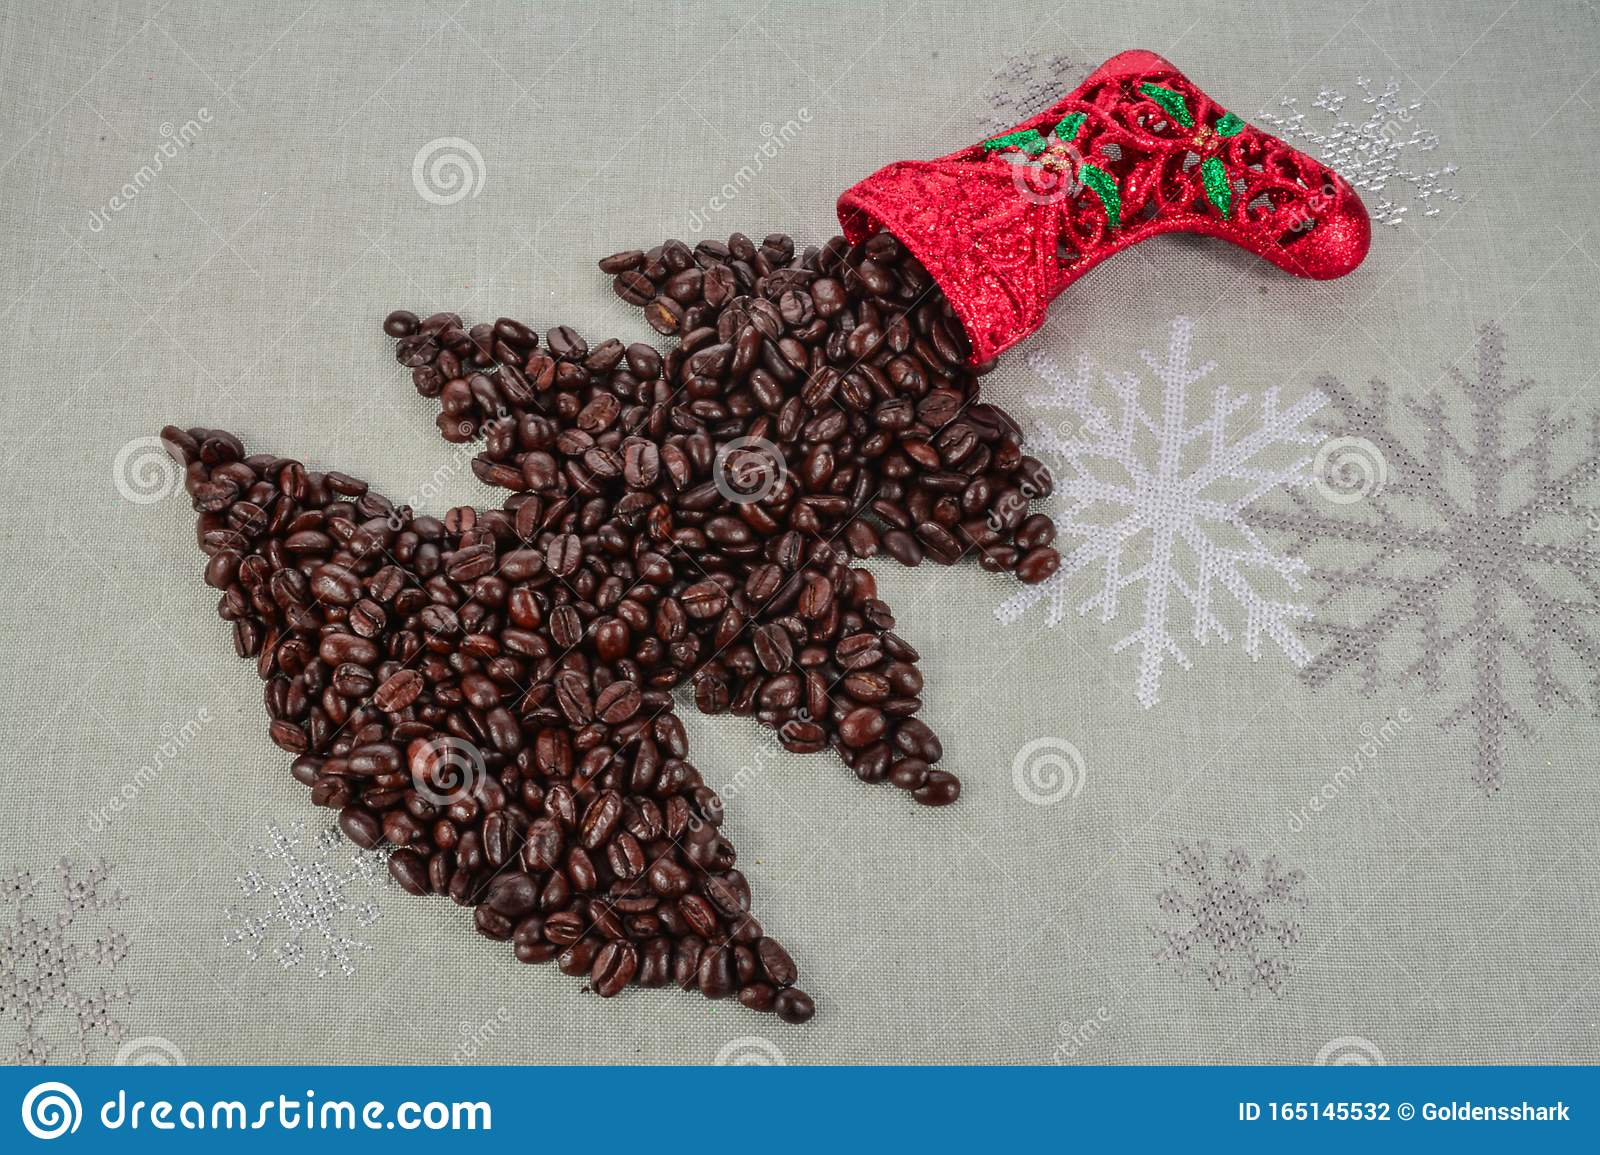 Coffee beans merry Christmas and 2020 happy new year